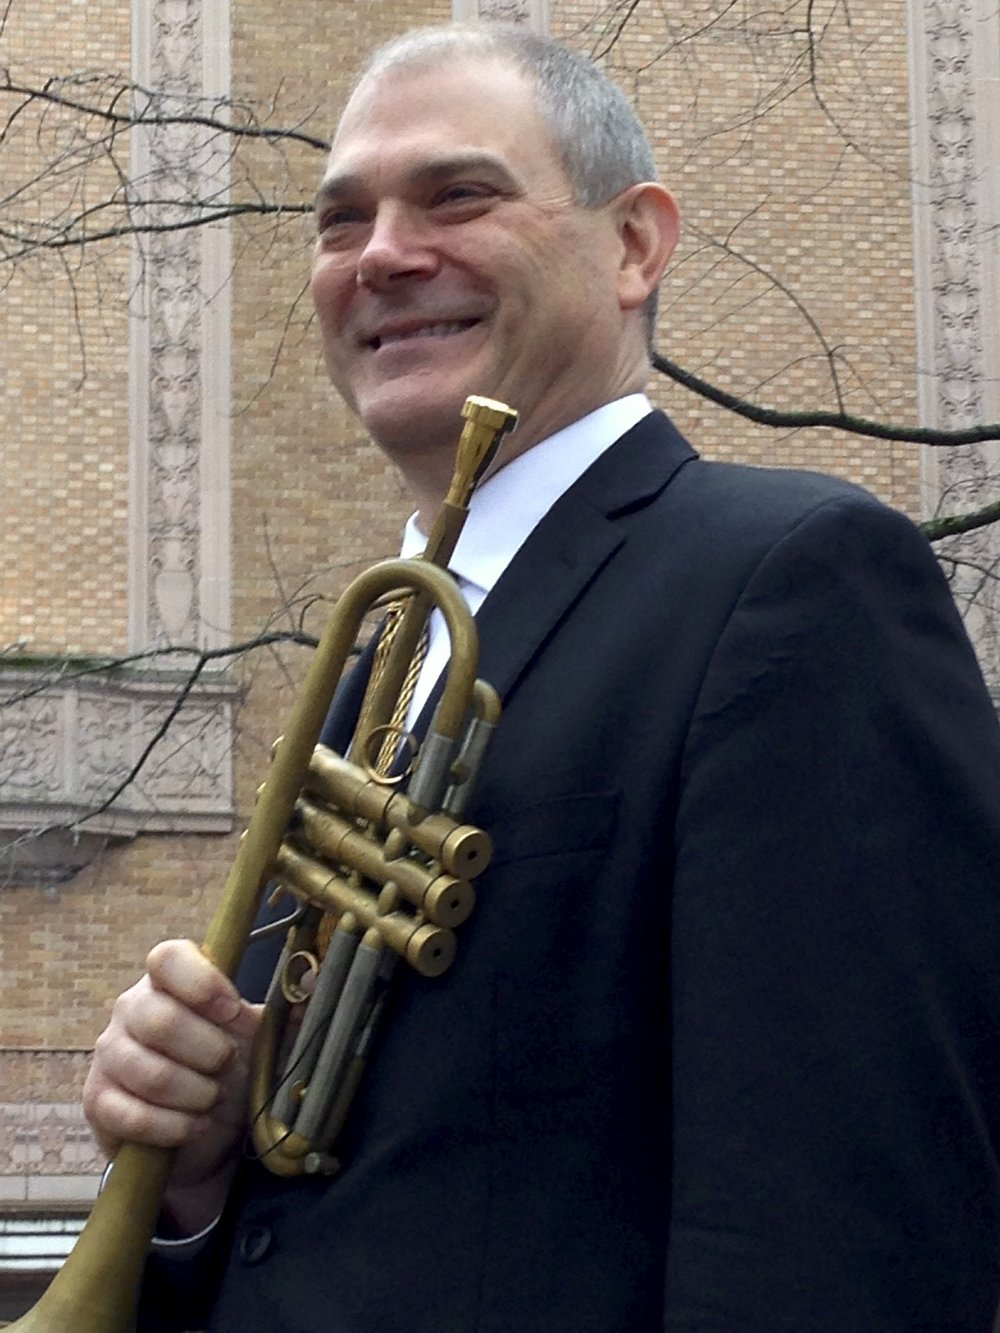 Steve Conrow, trumpet - Regular Substitute Trumpet, Oregon Symphony Orchestra. Performer, Eugene Symphony, Oregon Ballet TheaterLearn more about Steve ➝